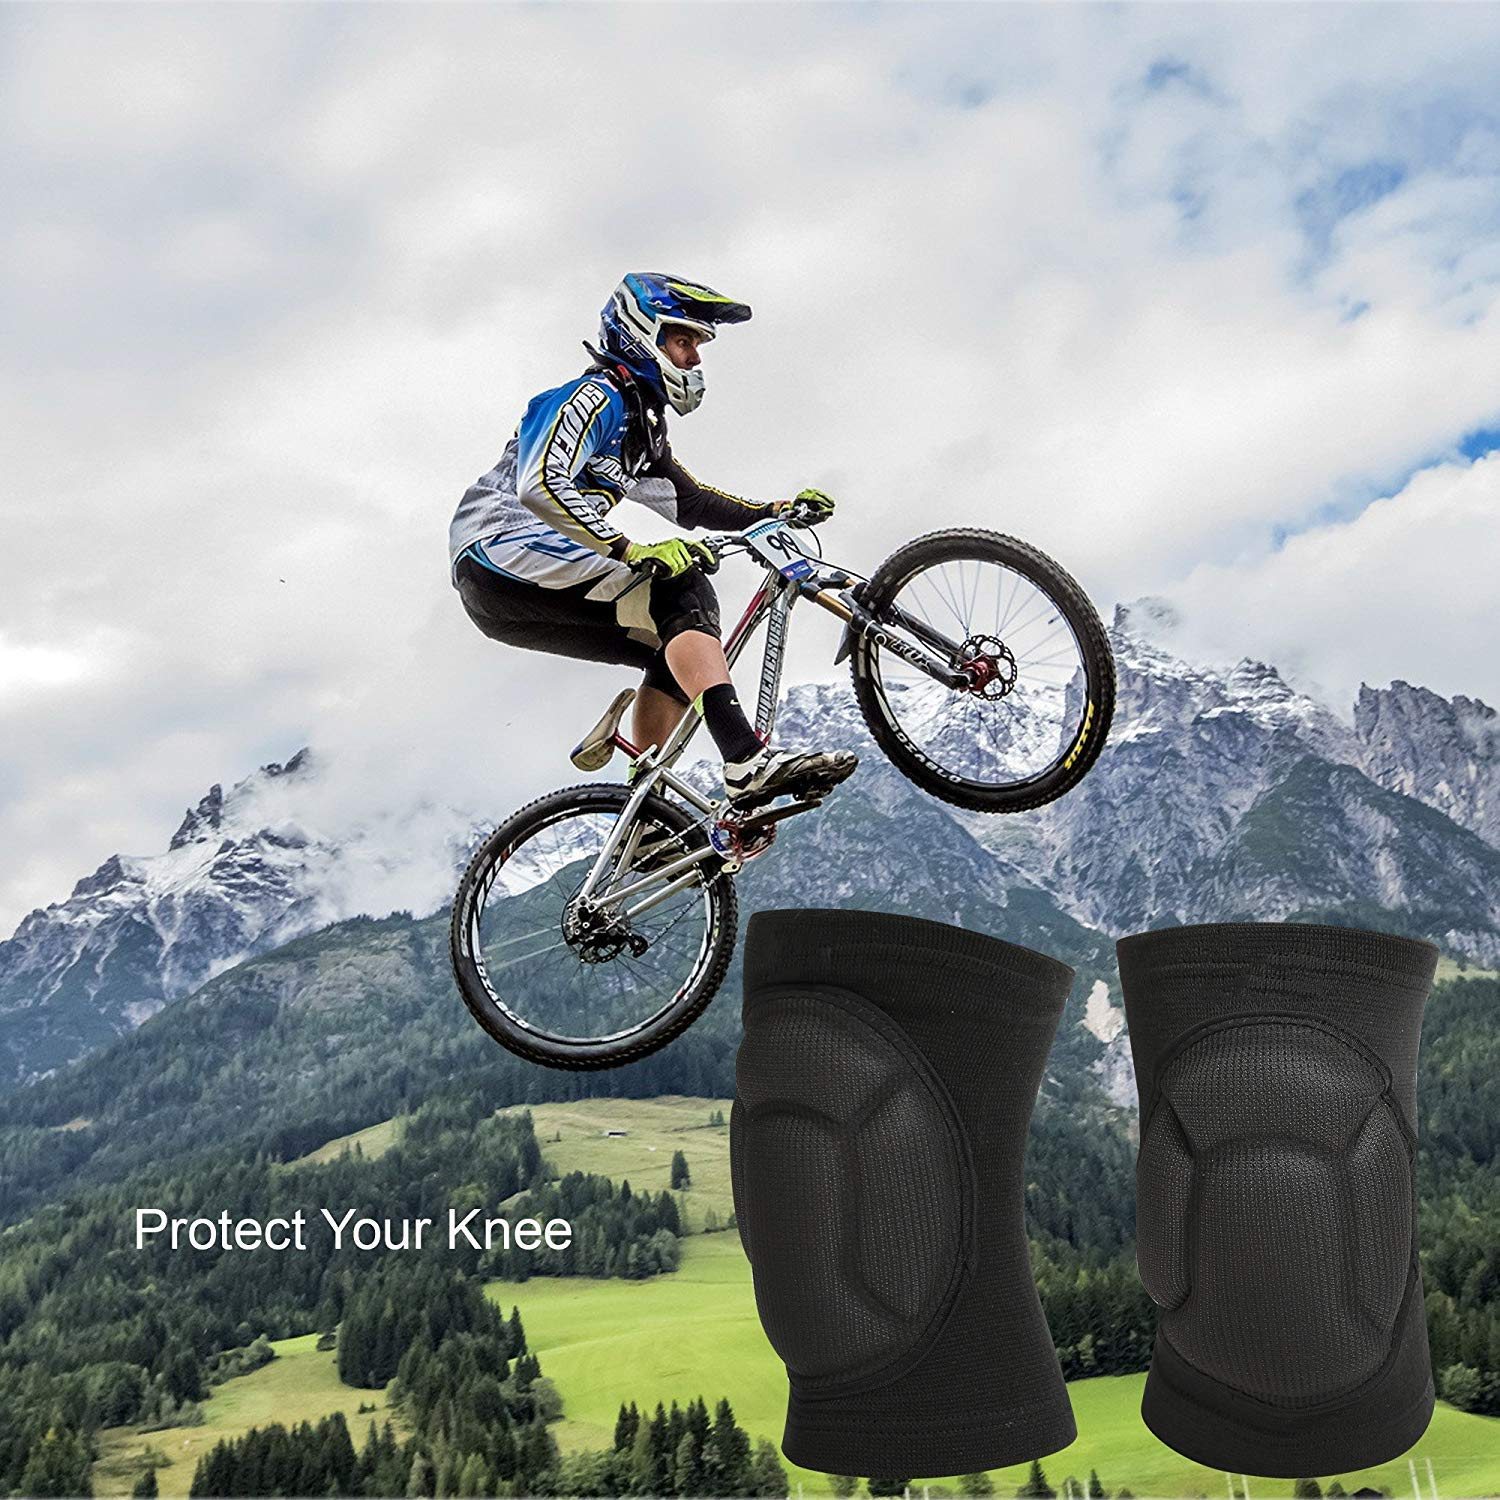 TY BEI Kneepad Kneepad - Protective Knee Pads, Thick Sponge Anti-Slip, Collision Avoidance Knee Sleeve @@ (Color : Black) by TY BEI (Image #7)